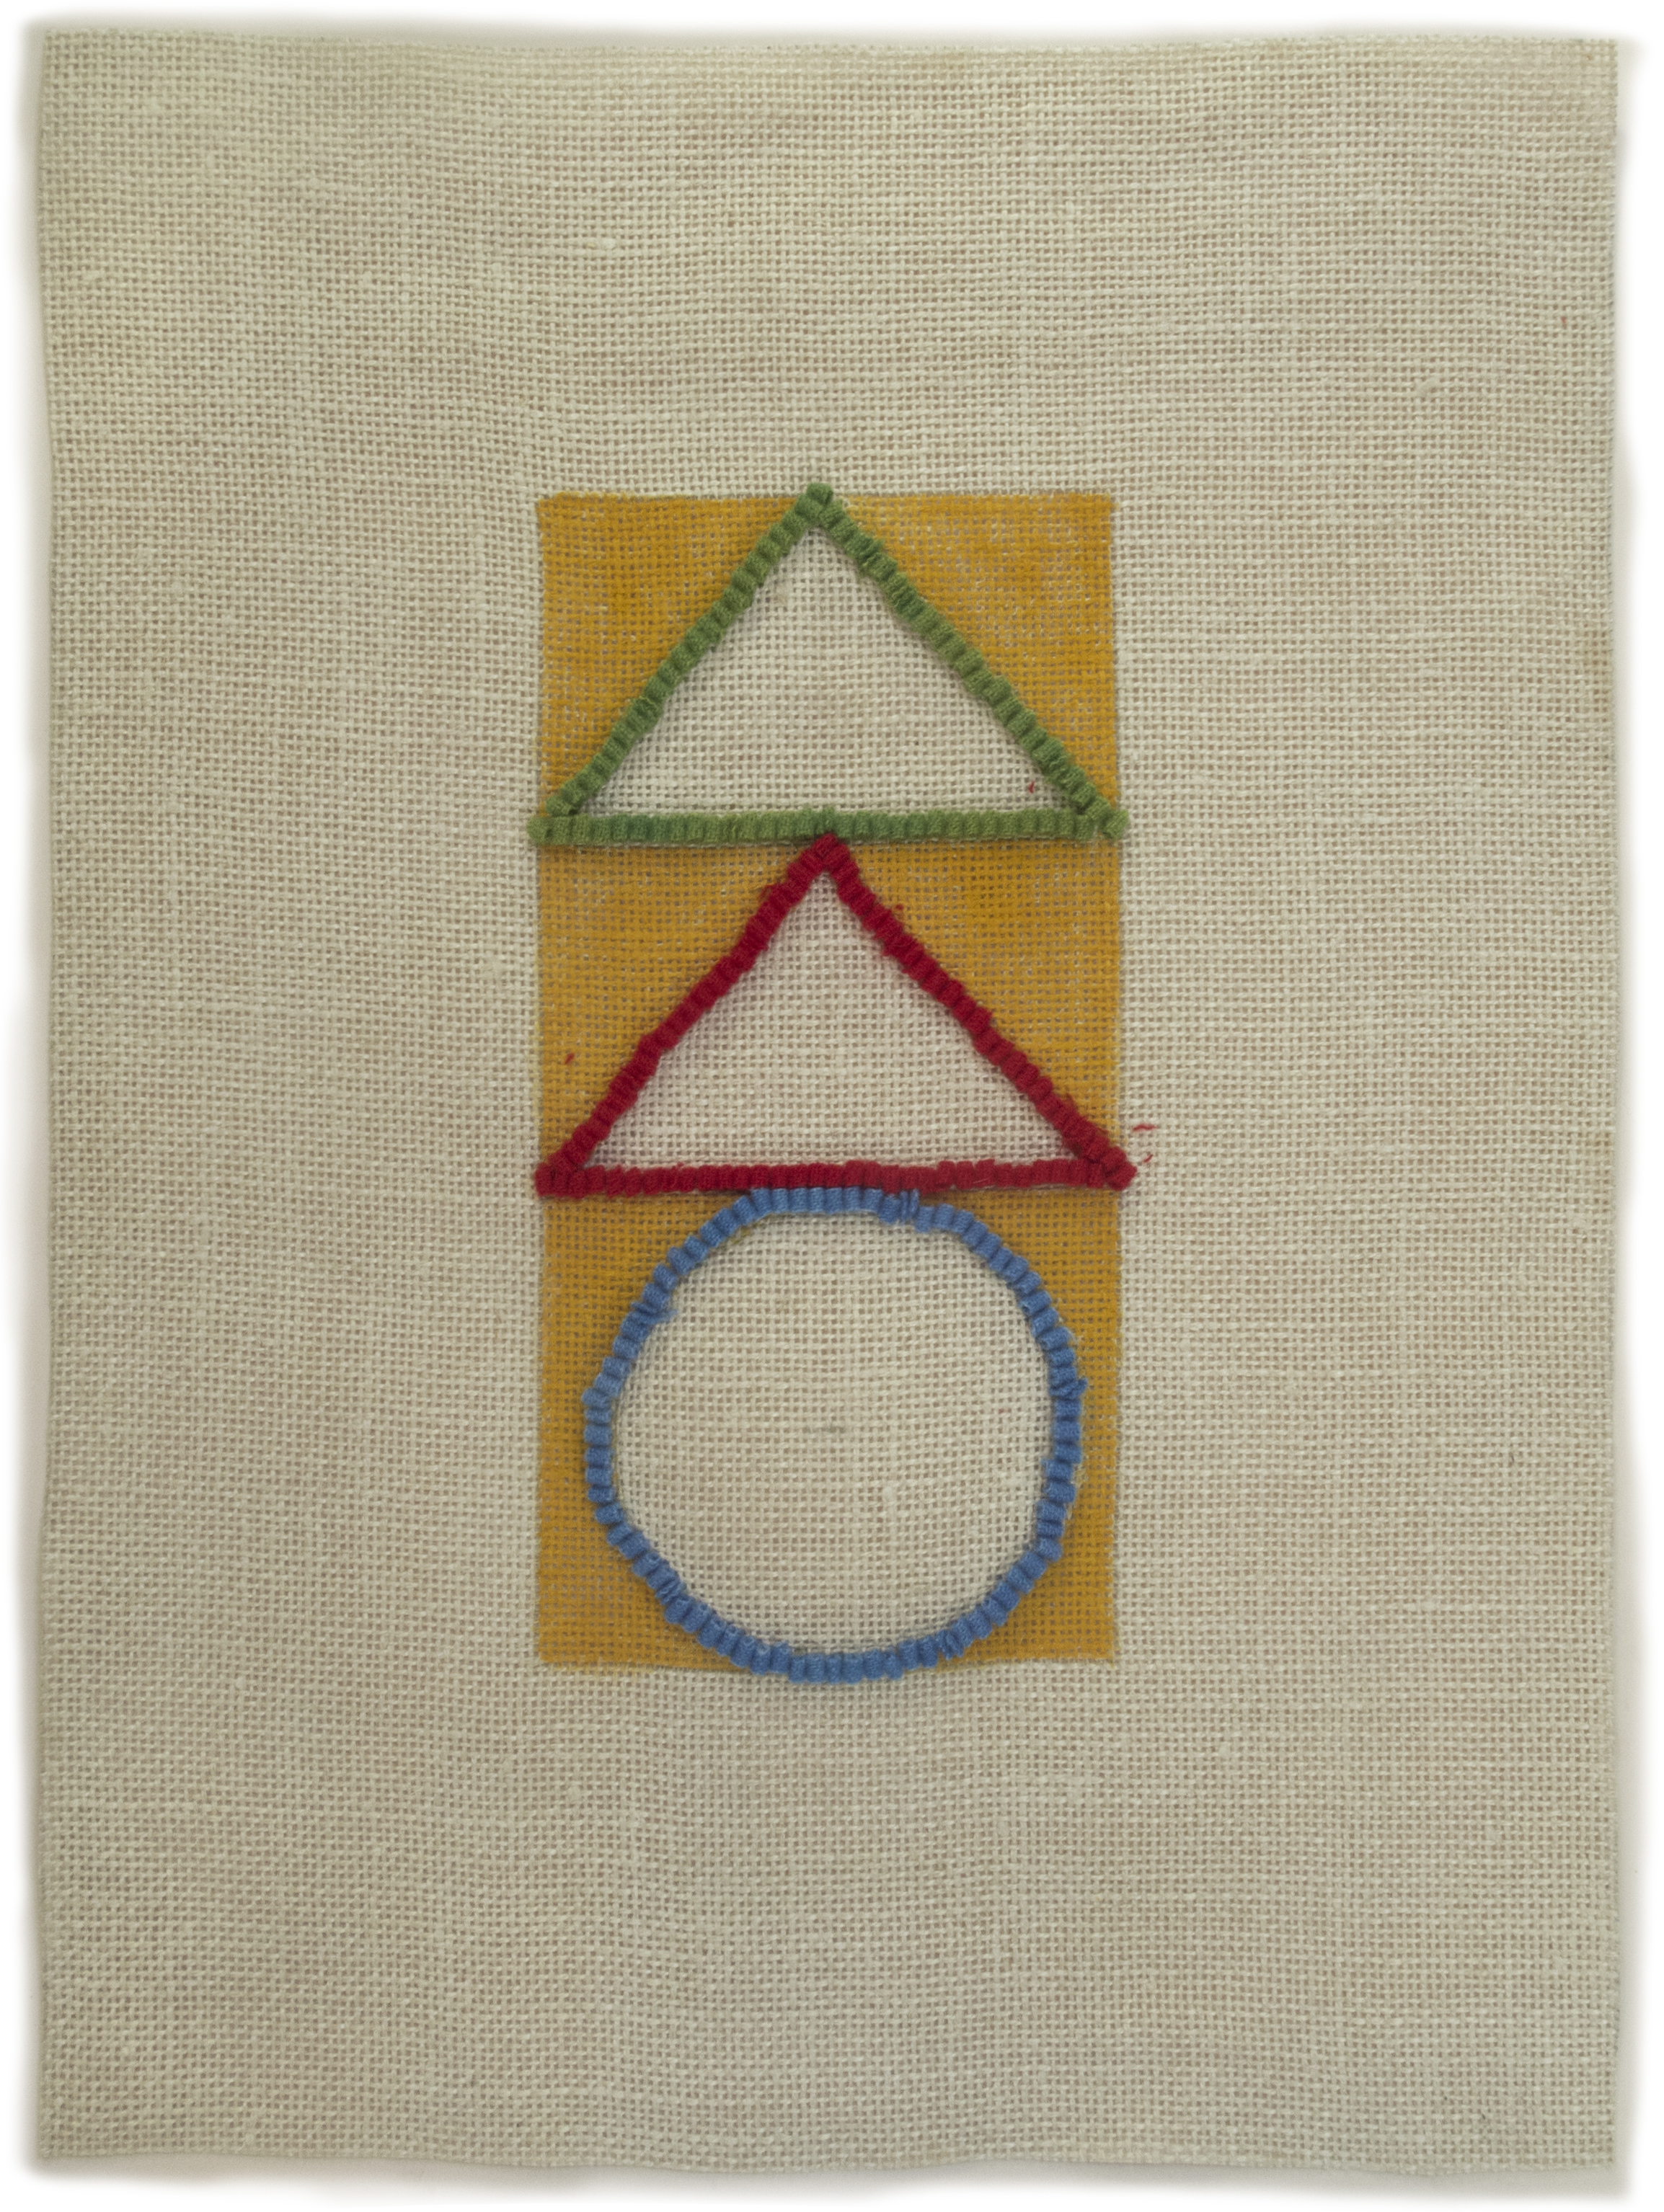 2013 #6, 2013, hand dyed wool and egg tempera onlinen, multi part, 18 x 13 1/2